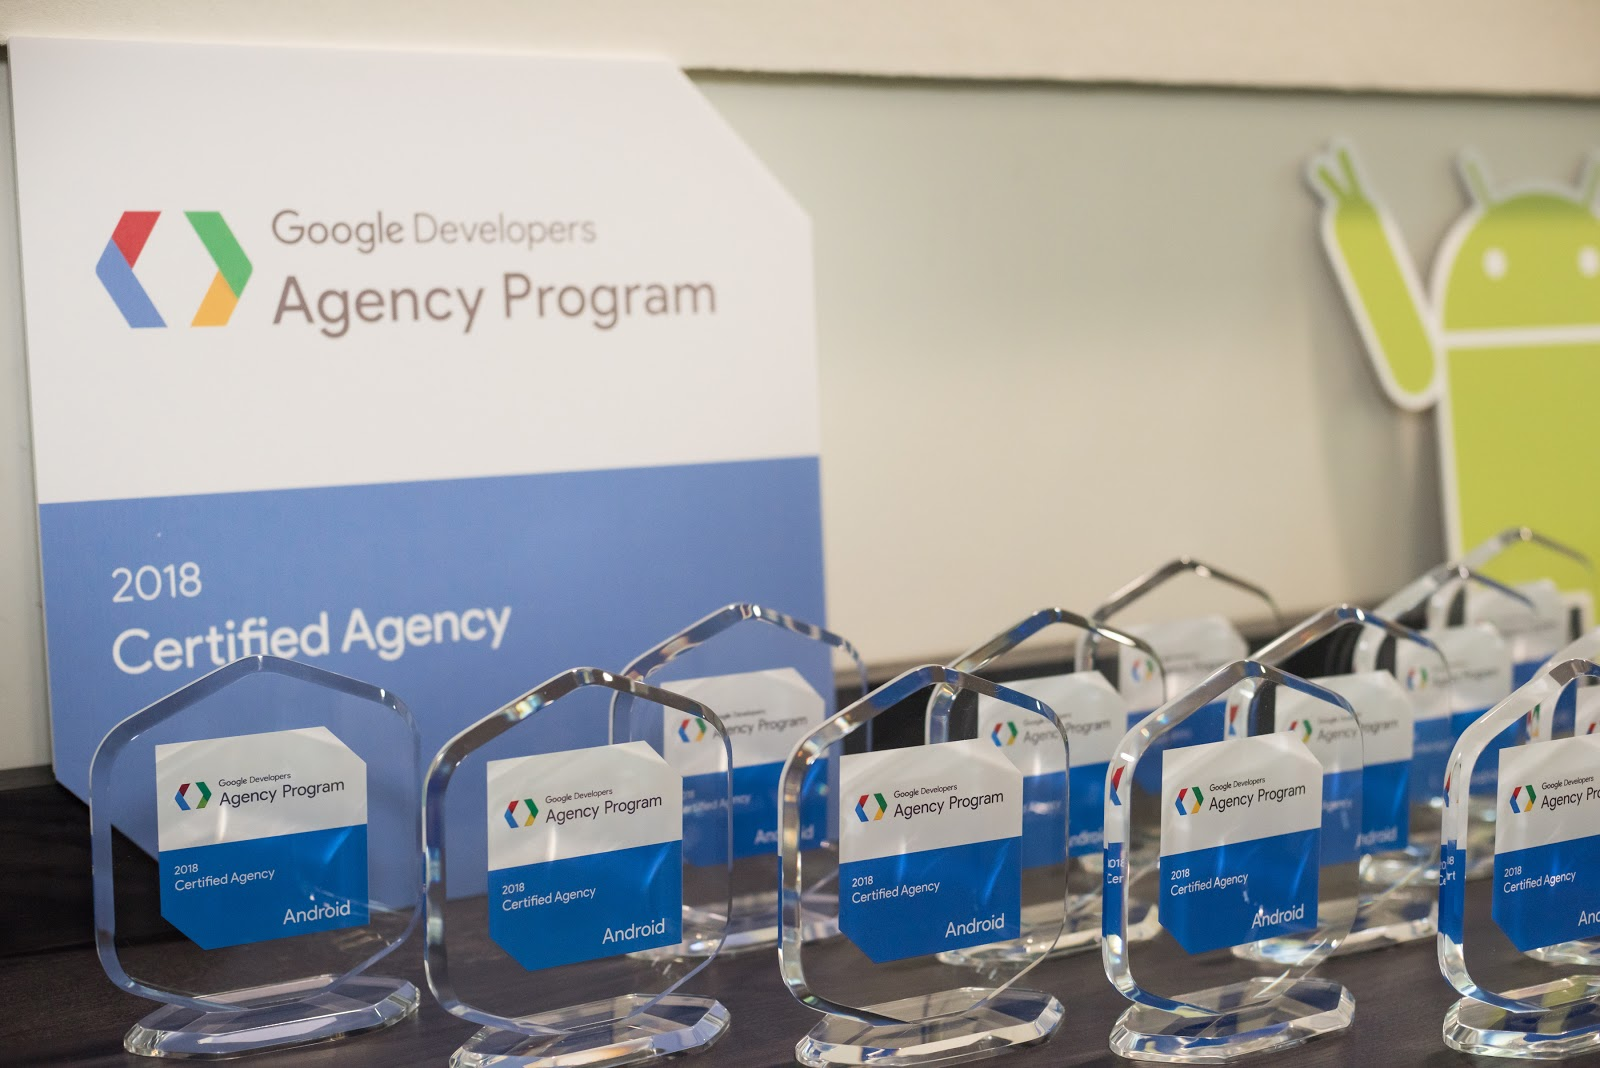 Google Developers Agency Program | Penghargaan